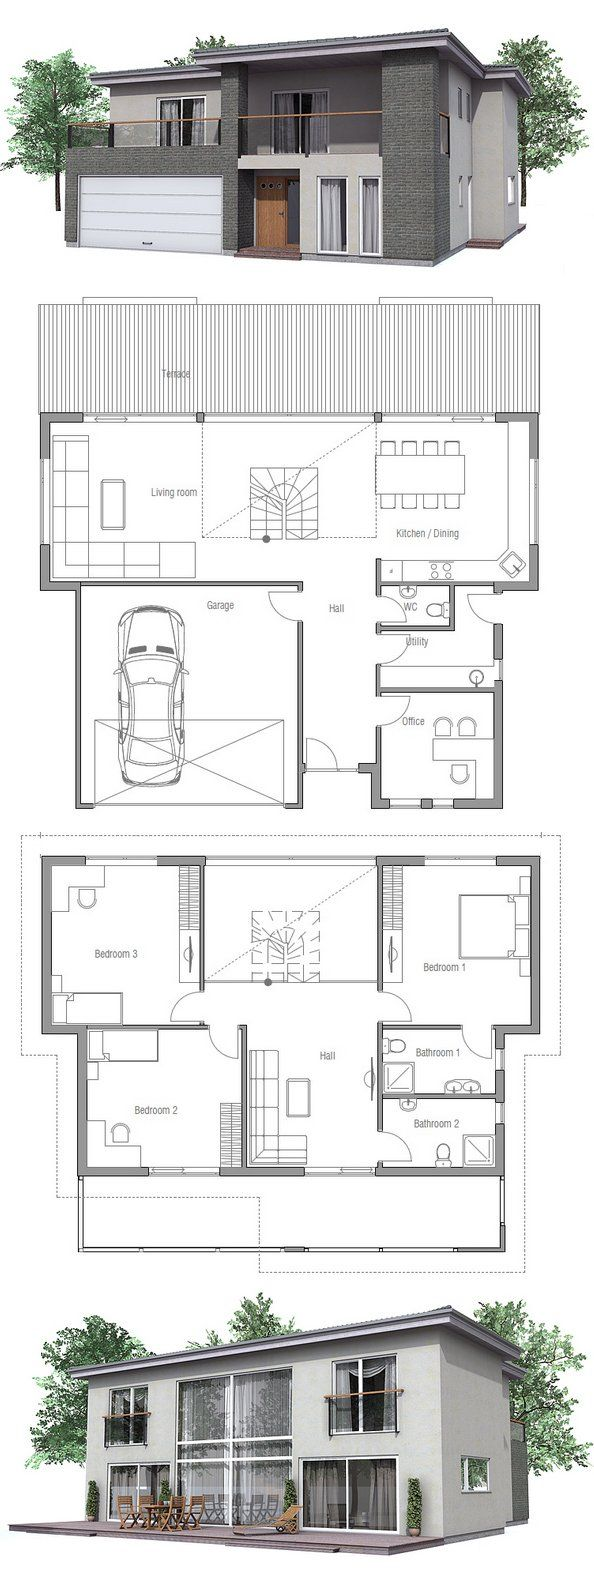 Modern House with three bedrooms and double garage. Floor Plan from ConceptHome.com